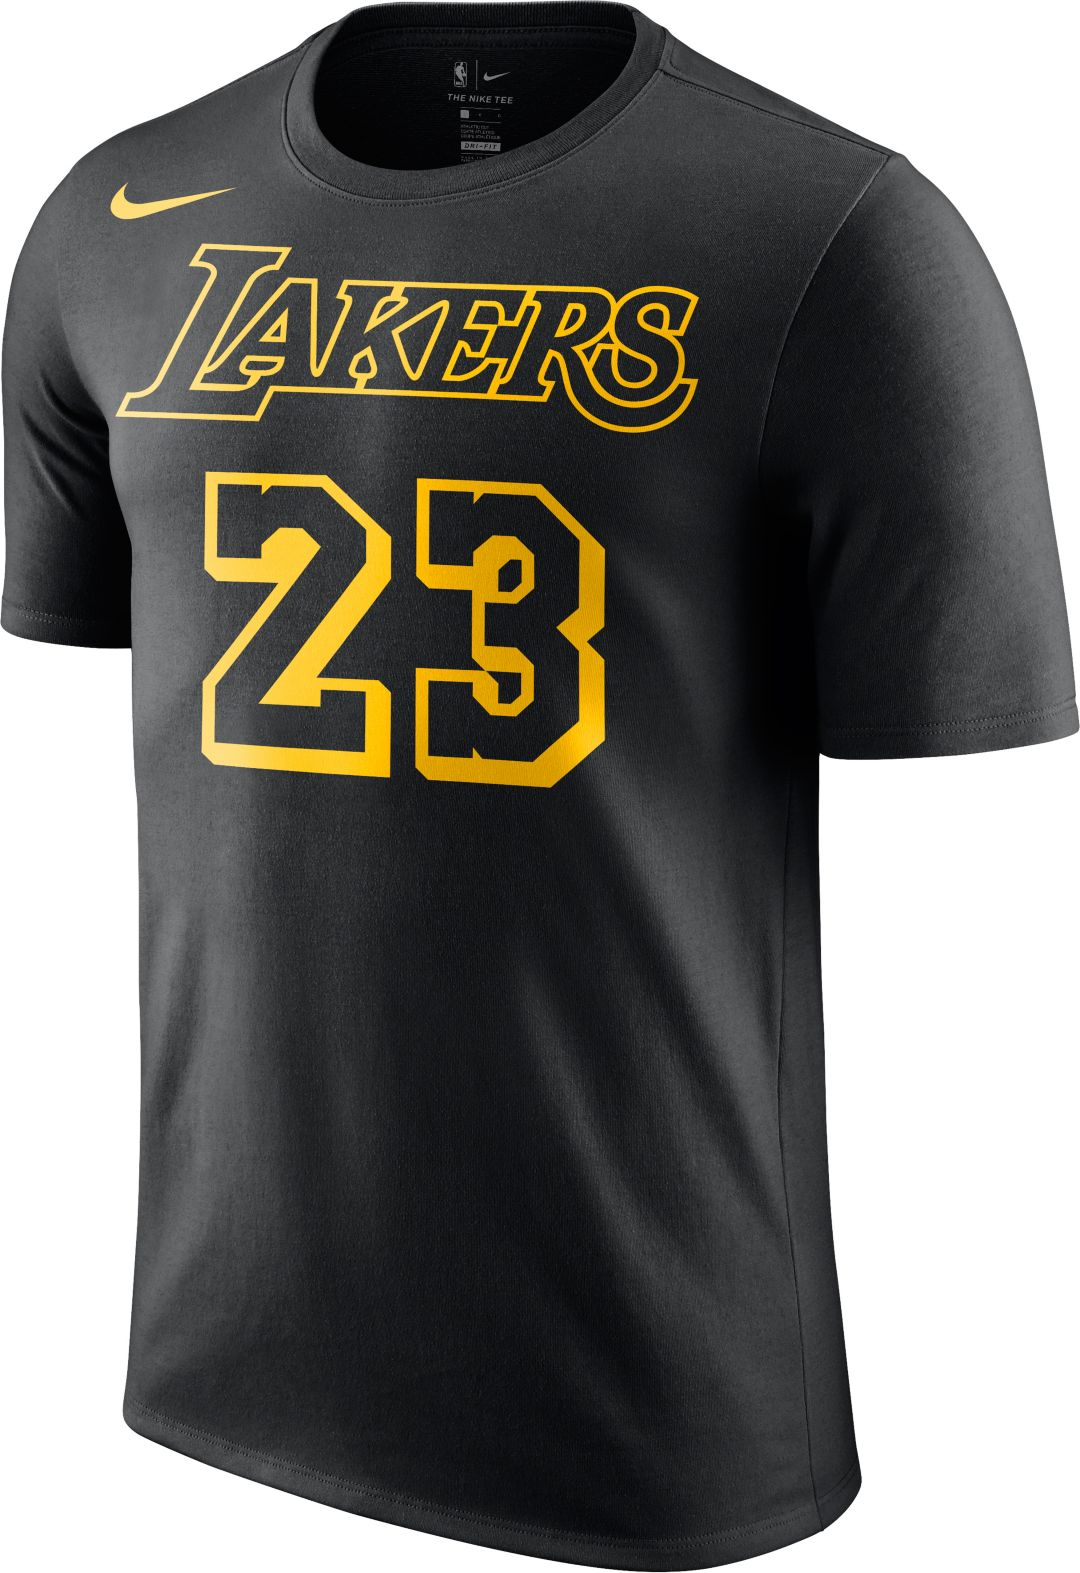 96a53875 Nike Youth Los Angeles Lakers LeBron James Dri-FIT City Edition T-Shirt 2